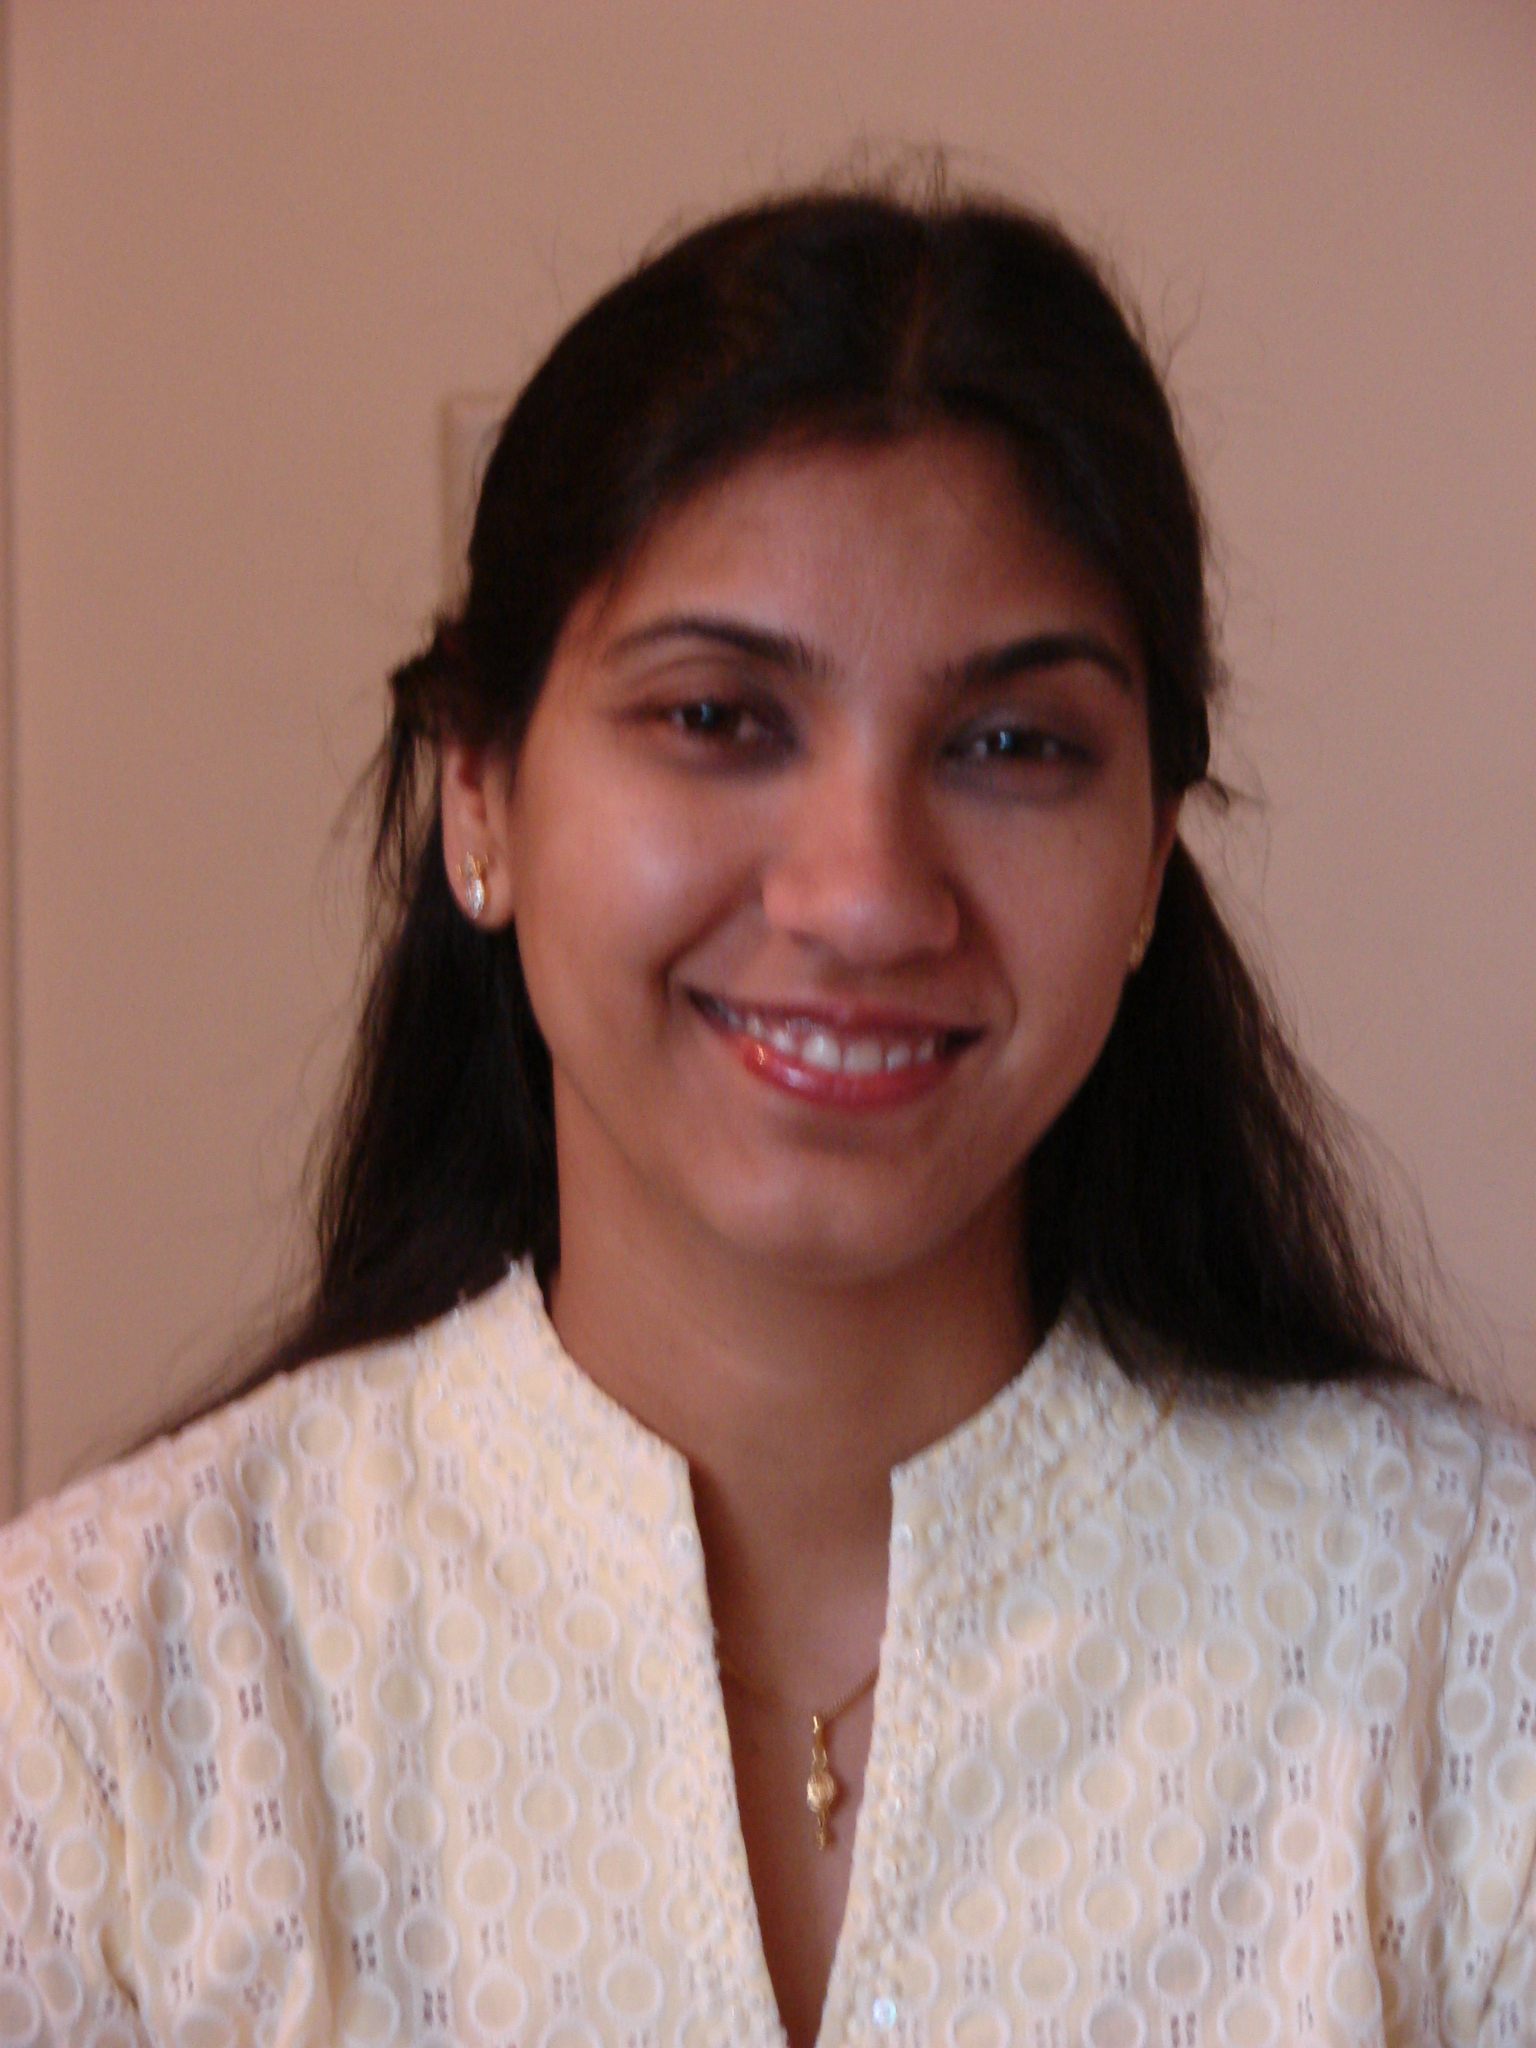 Beena Vesikar - Founder of Beayurvedic Wellness Center.M.D. Ayurvedic Medicine - Internal Medicine (Kayachikitsa) - University of Pune, IndiaB.A.M.S –University of Pune - IndiaLMT- Licensed Massage Therapist- USAAYT (Ayurveda Yoga Therapist) - NAMA ApprovedCertified Clinical Nutritionist – USARYT- registered Yoga Teacher- USAFaculty- BVI institute of Vedic Science- MichiganNAMA – Pace credits providerNCBTMB Provider